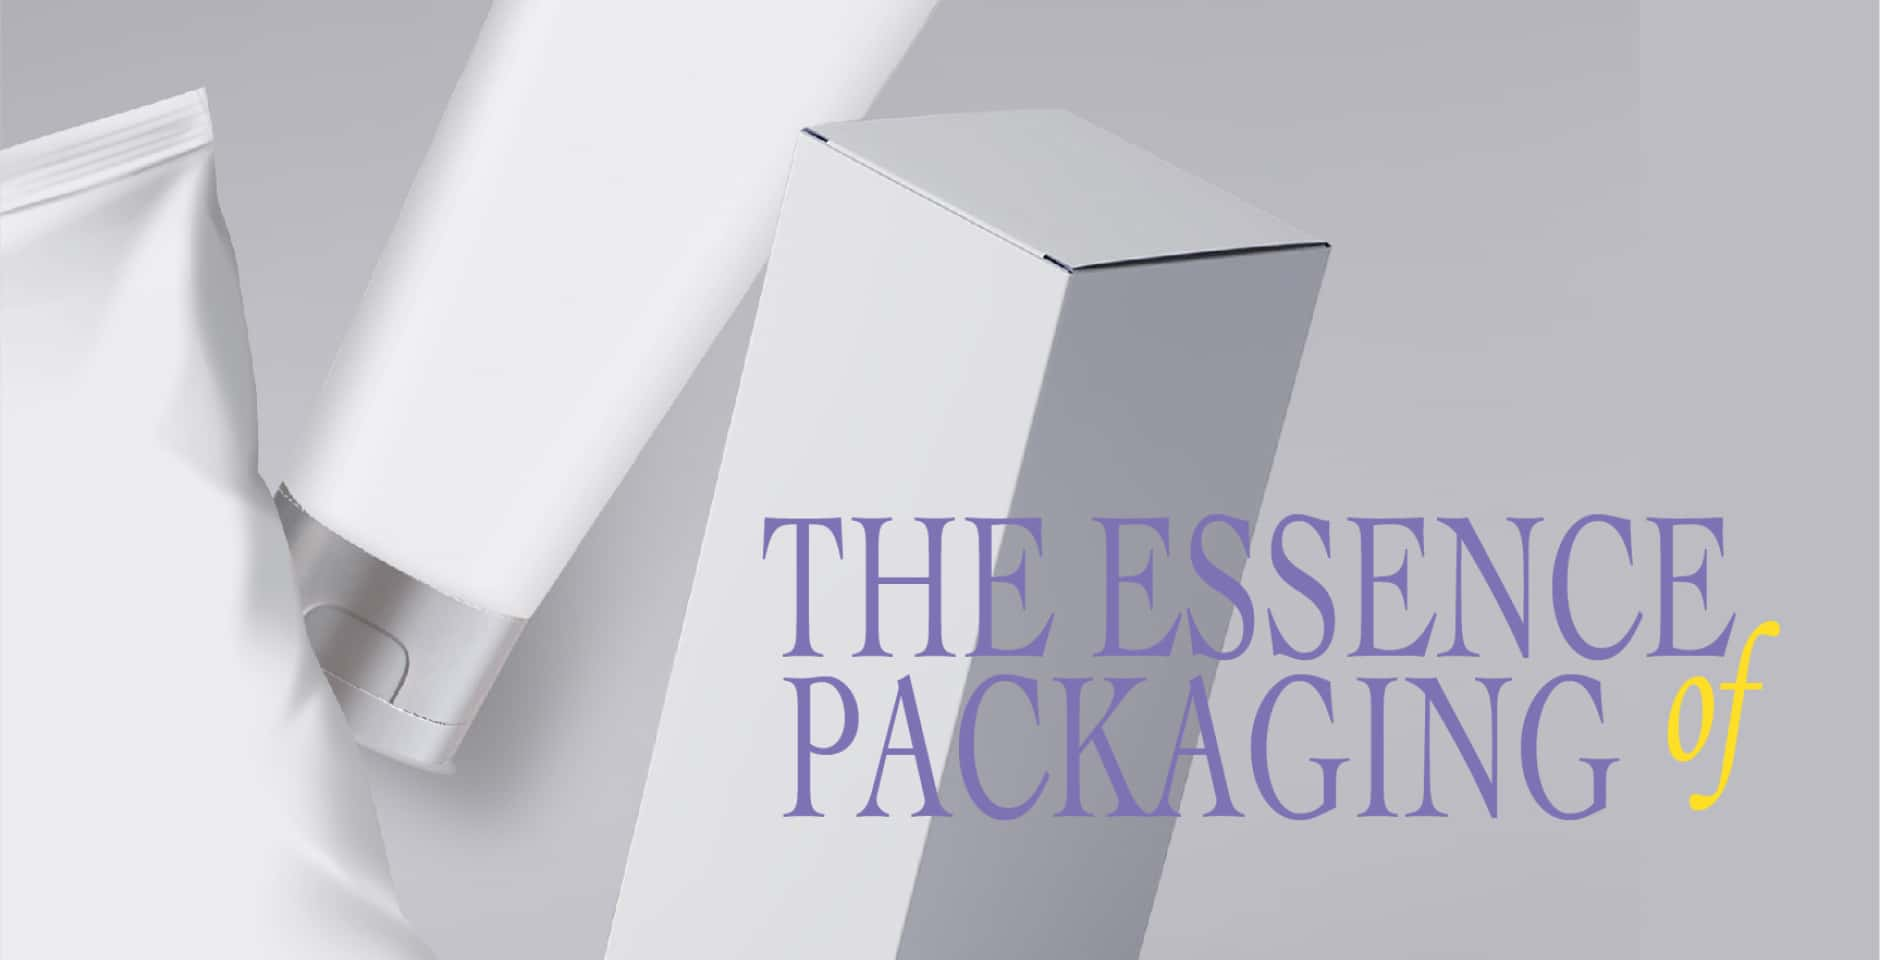 The essence of Packaging